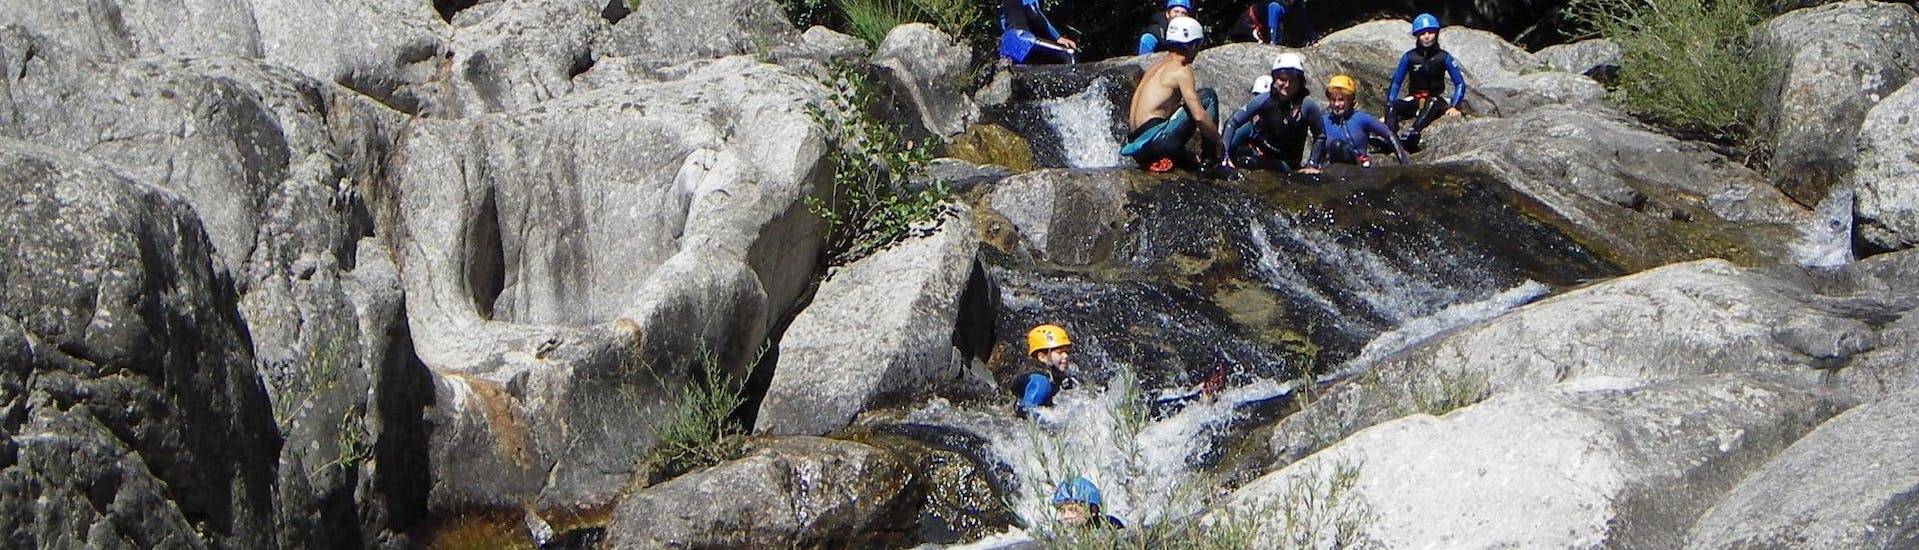 discovery-canyoning-in-haut-chassezac-canyon-cevenaventure-hero2